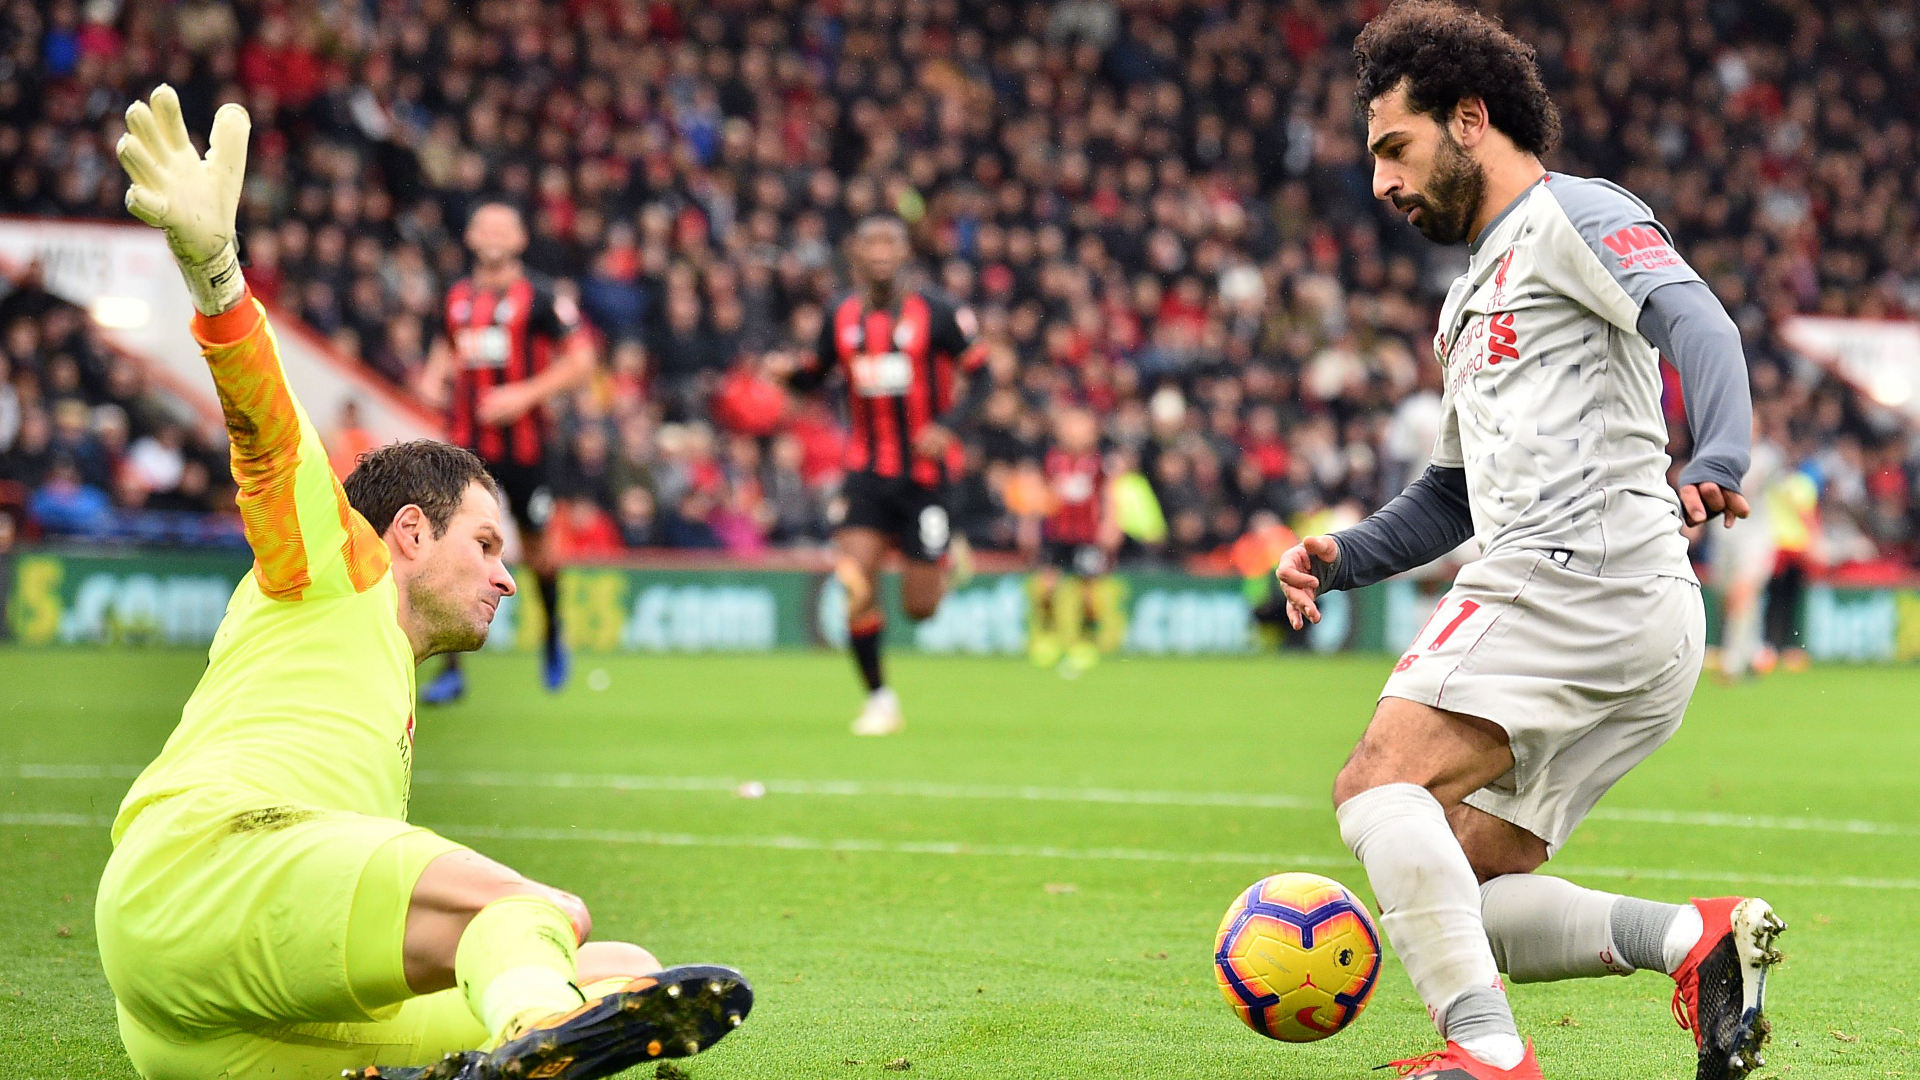 Everyone noticed Mo Salah's goal celebrations for Liverpool vs Bournemouth